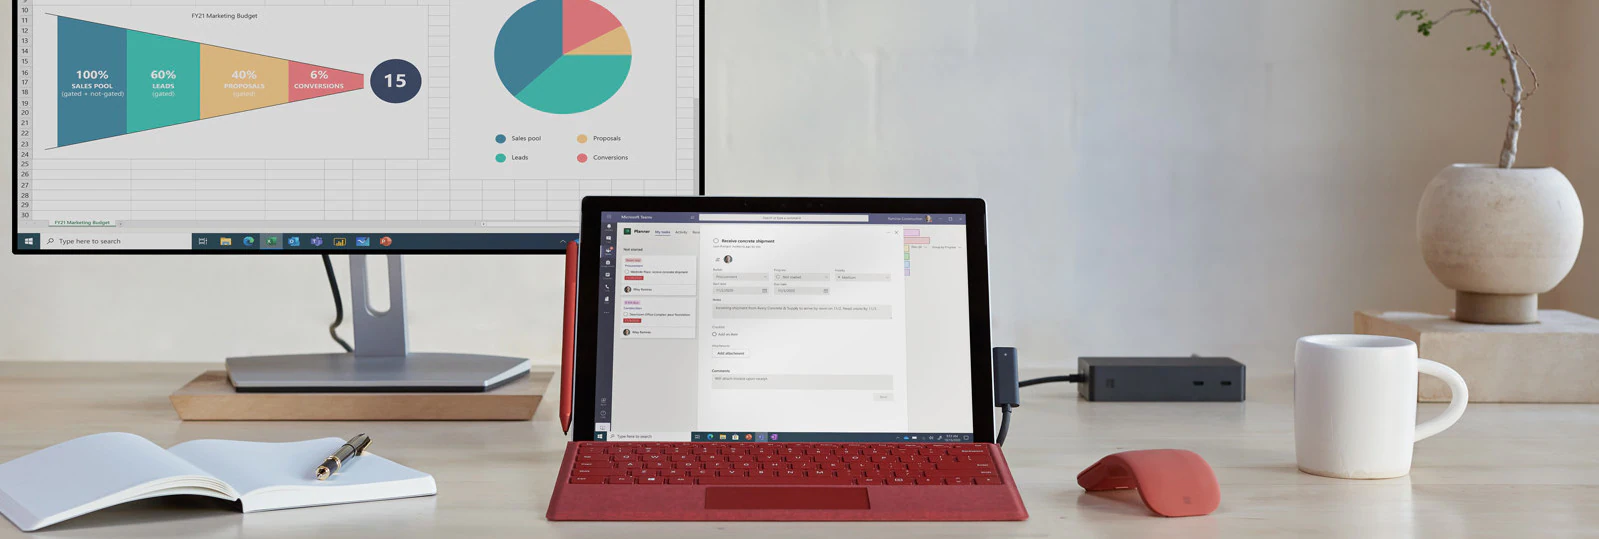 surface pro 7 plus overall